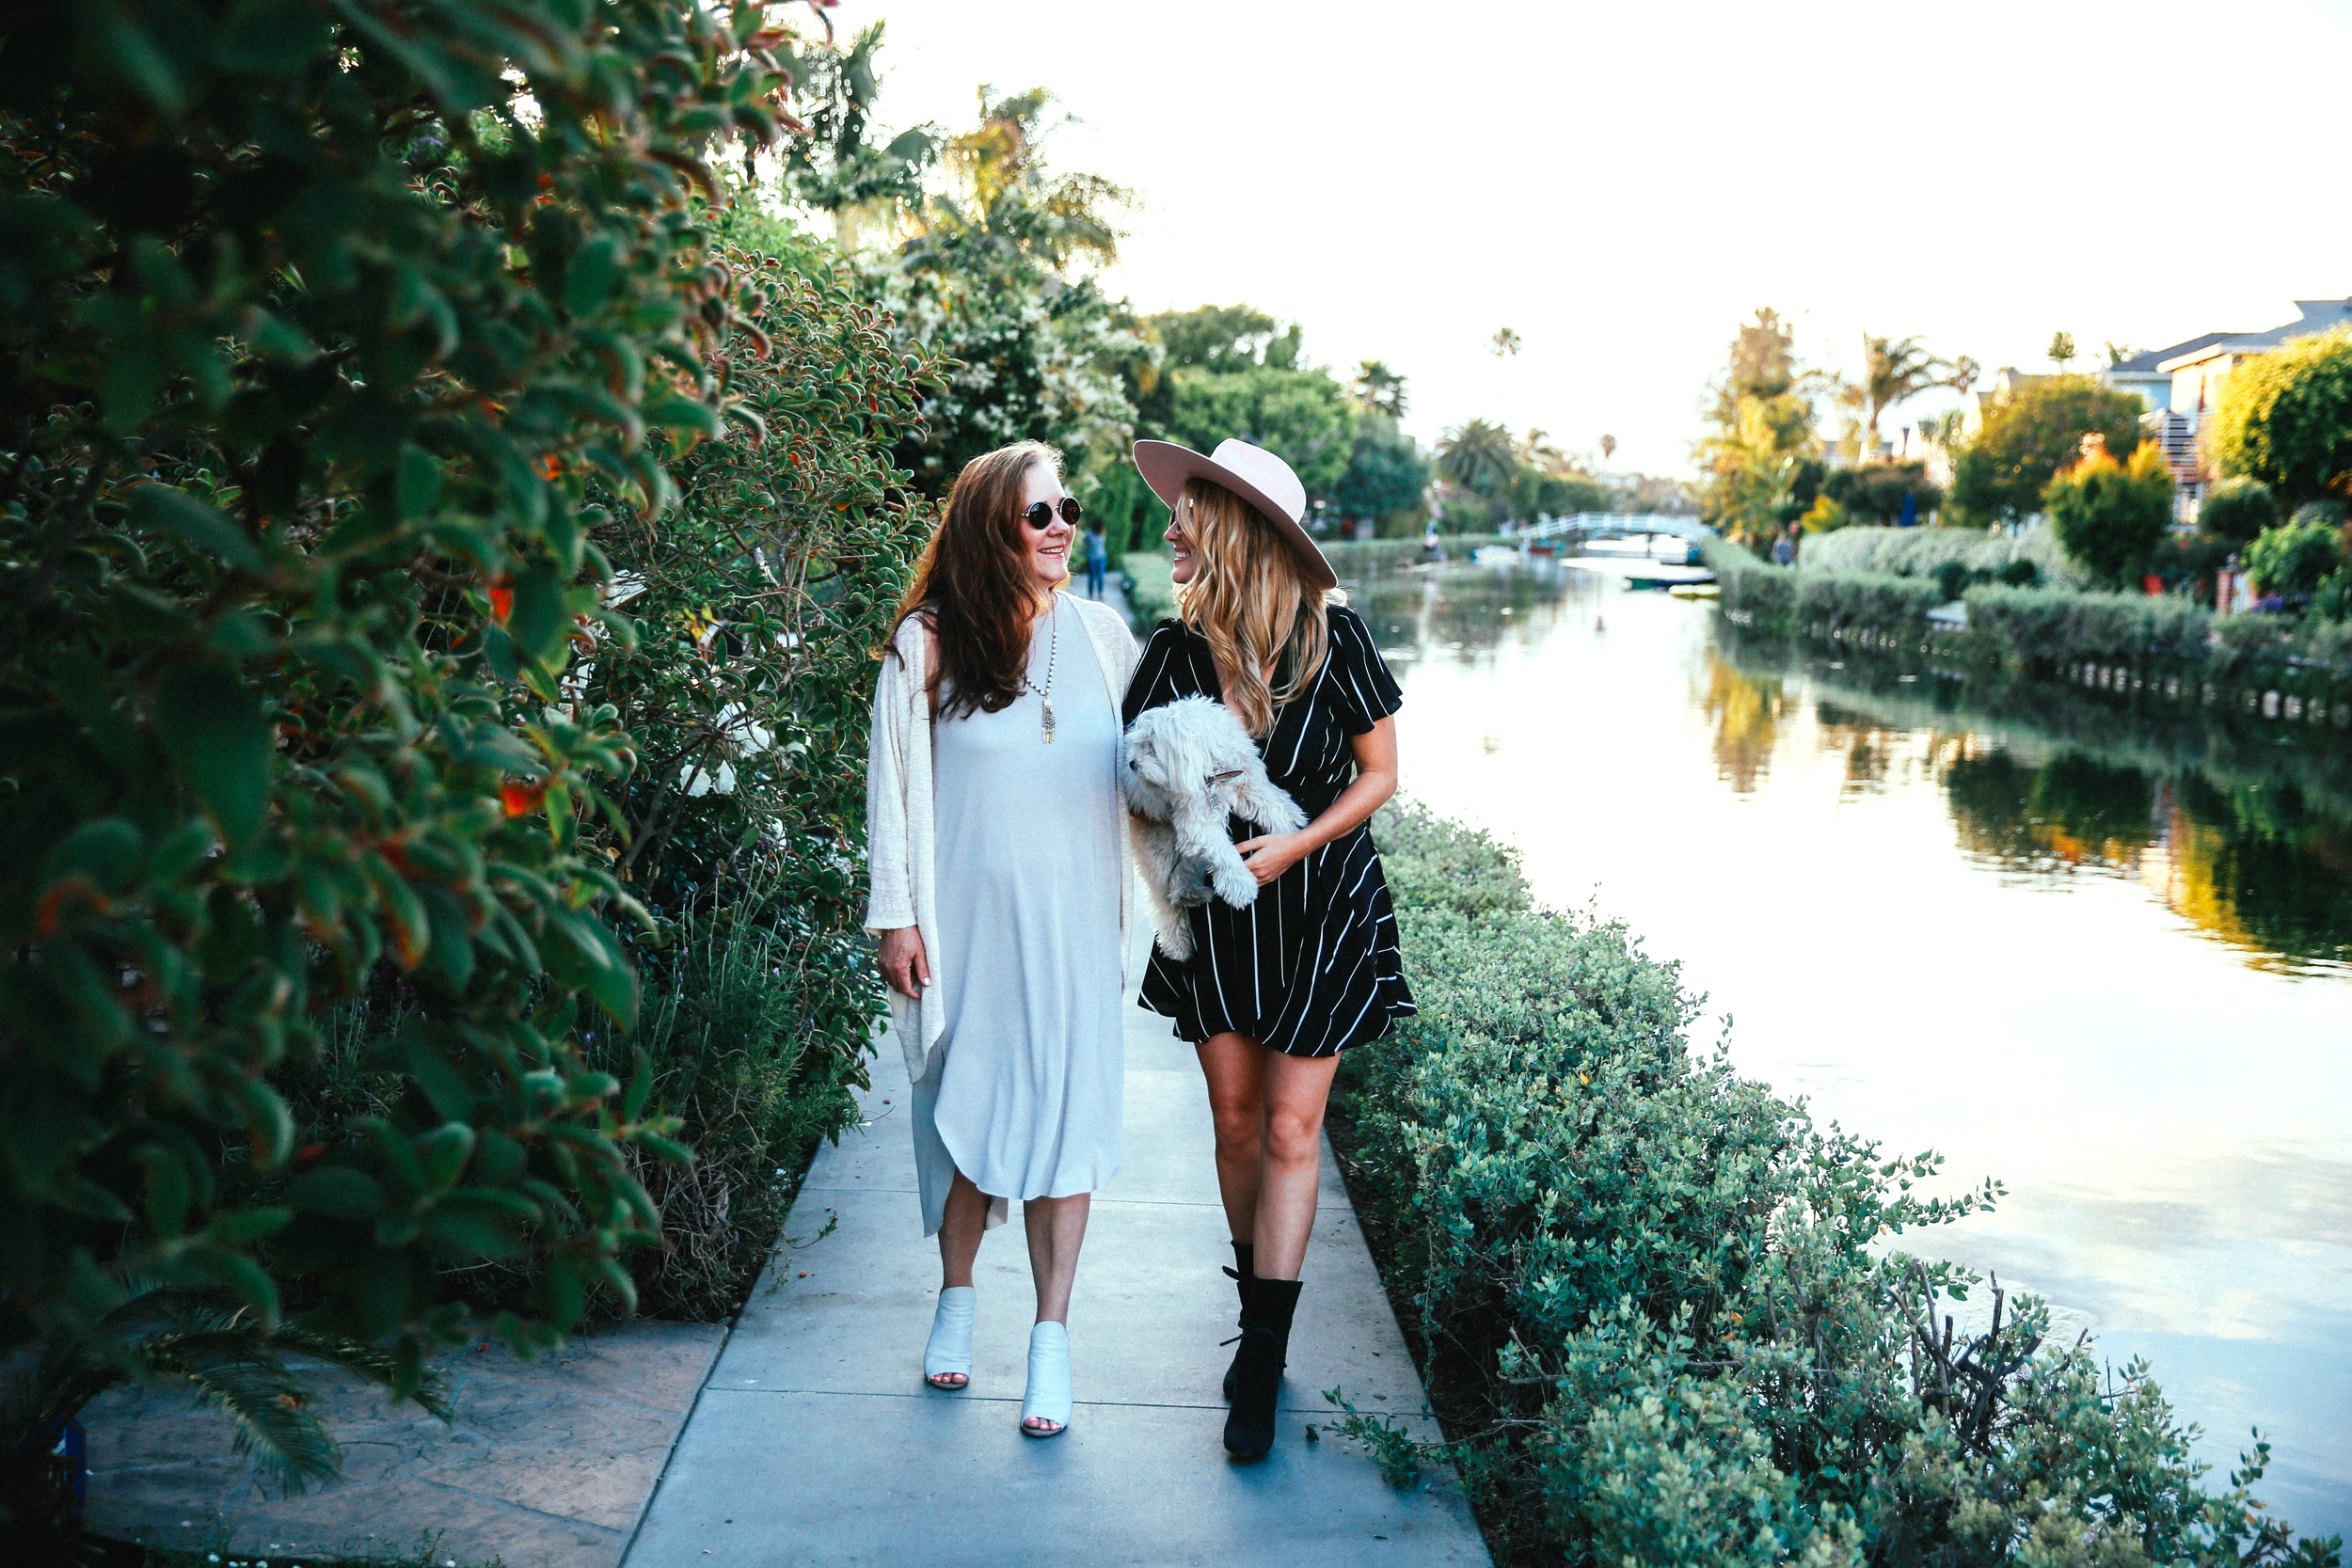 The style sauce fashion blog venice beach canals Mommy and me style